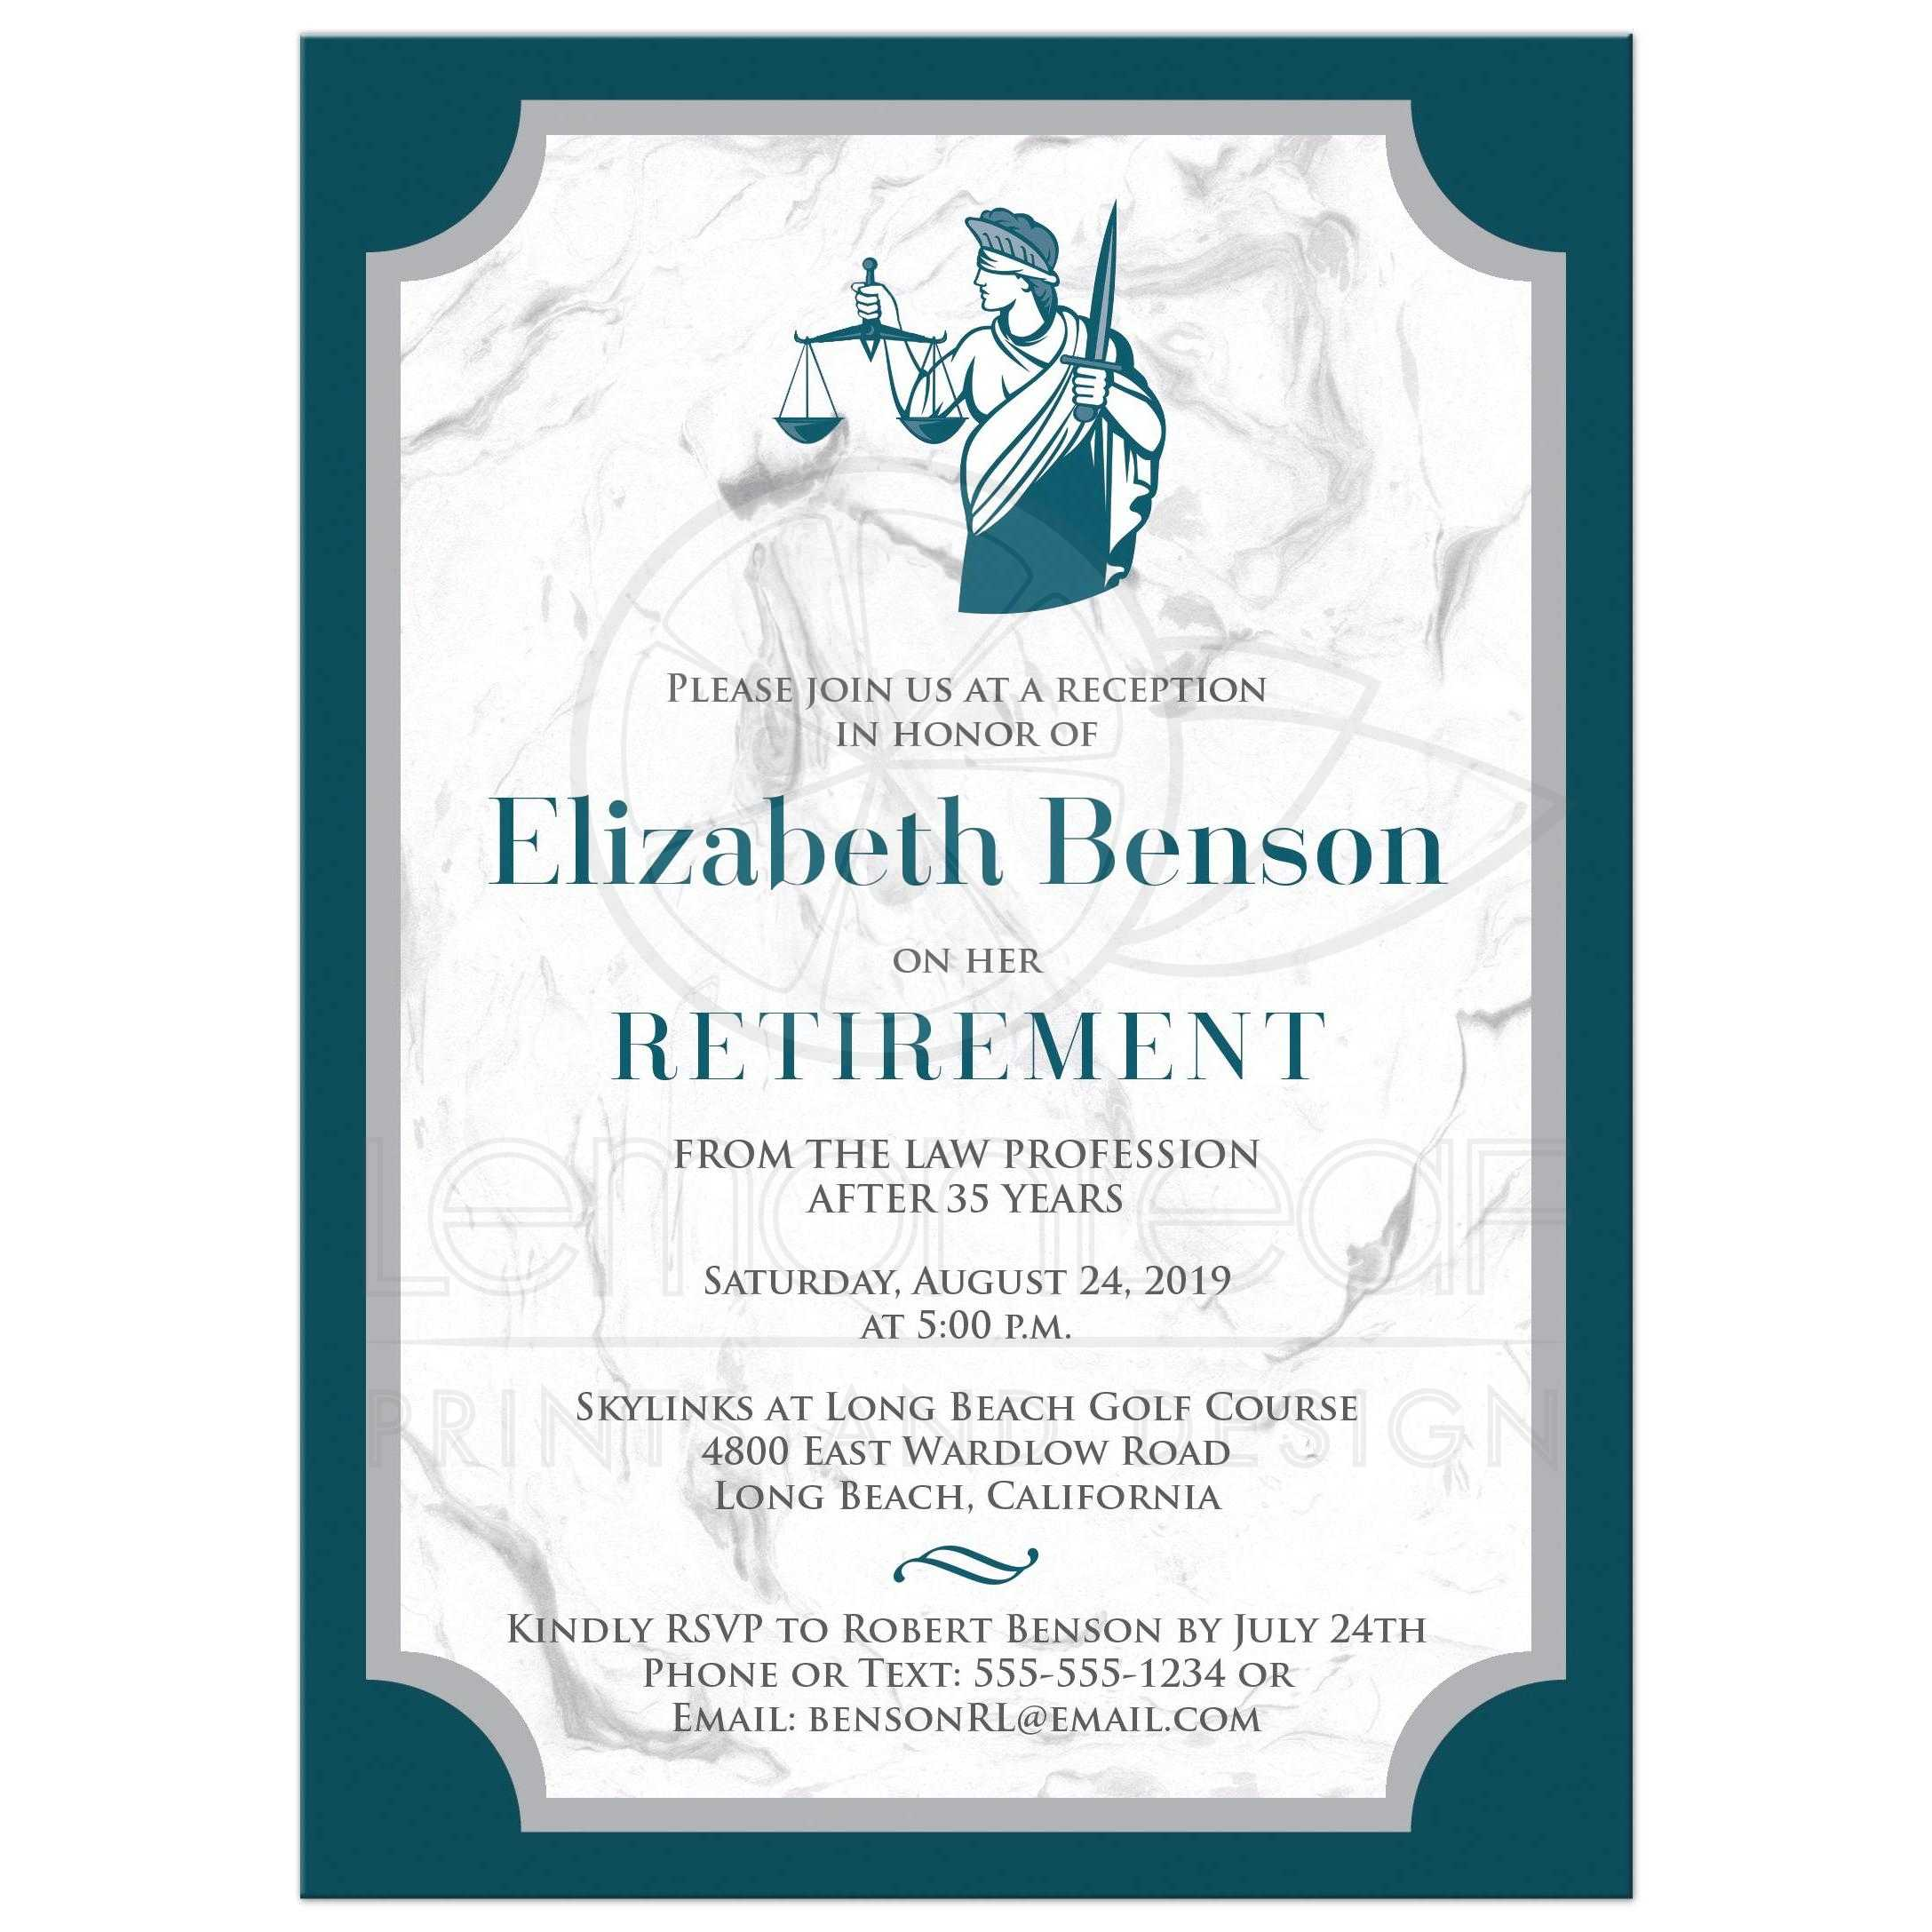 teal grey white marble look lady justice retirement invitation